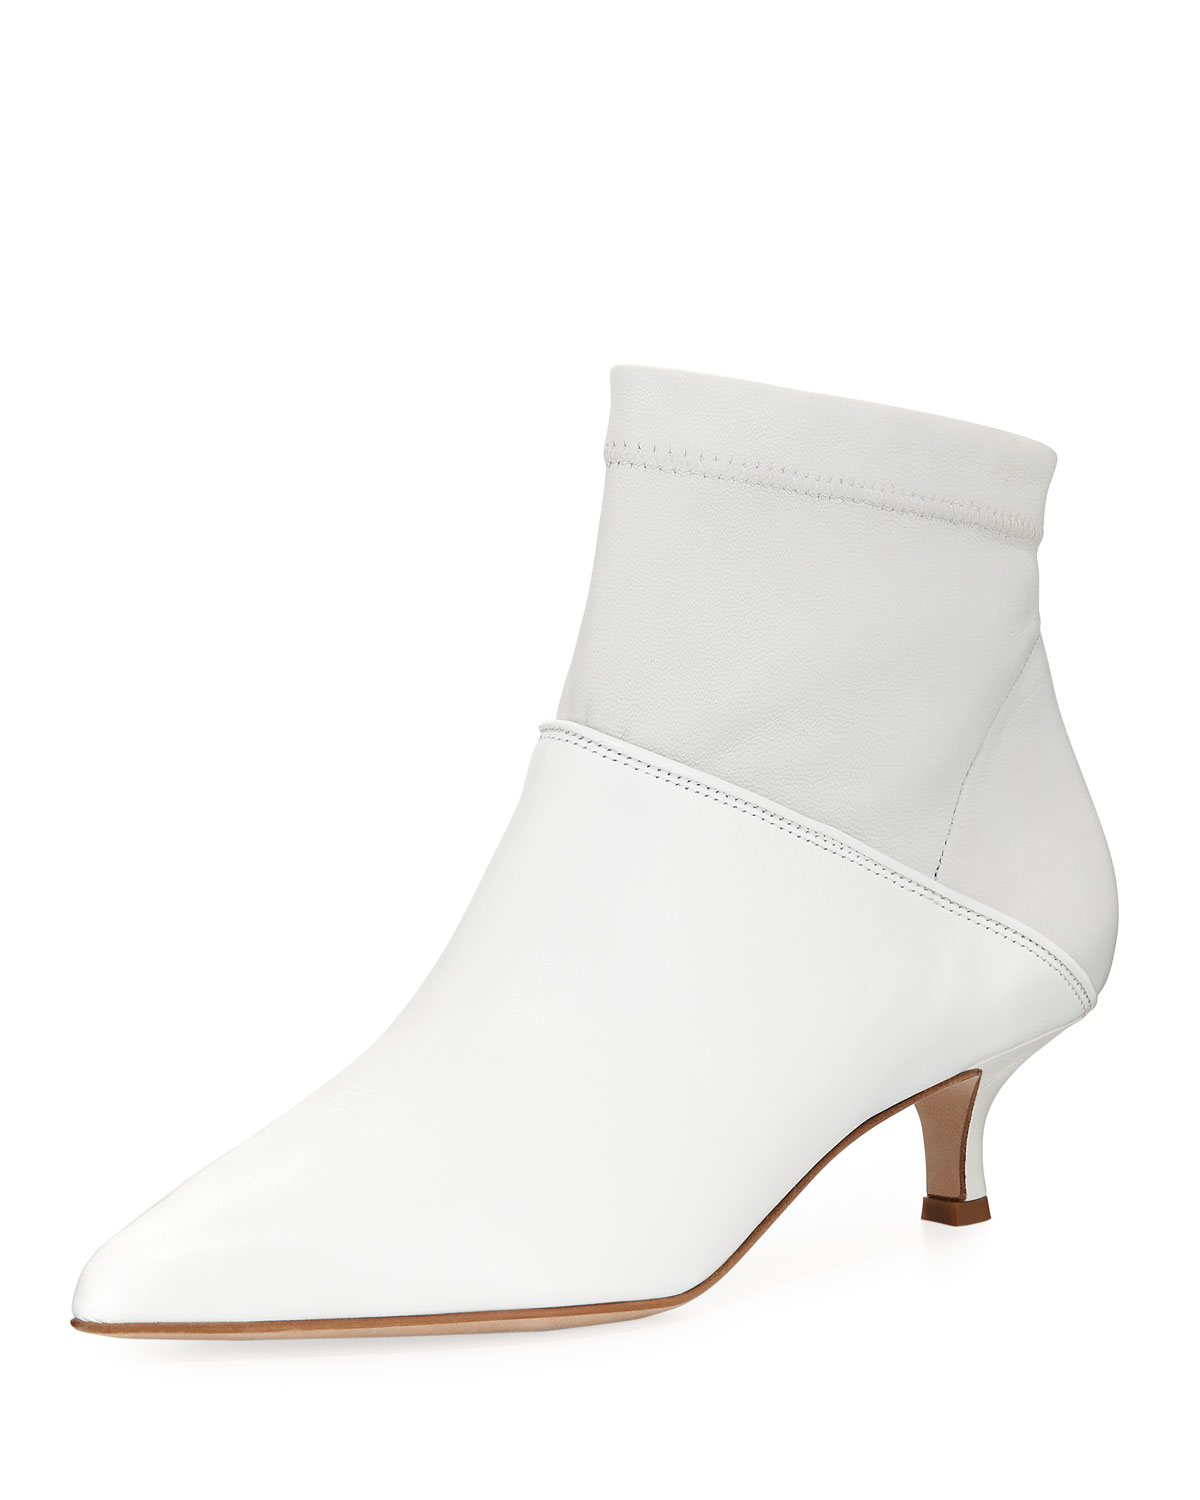 Tibi Shoe Reviews